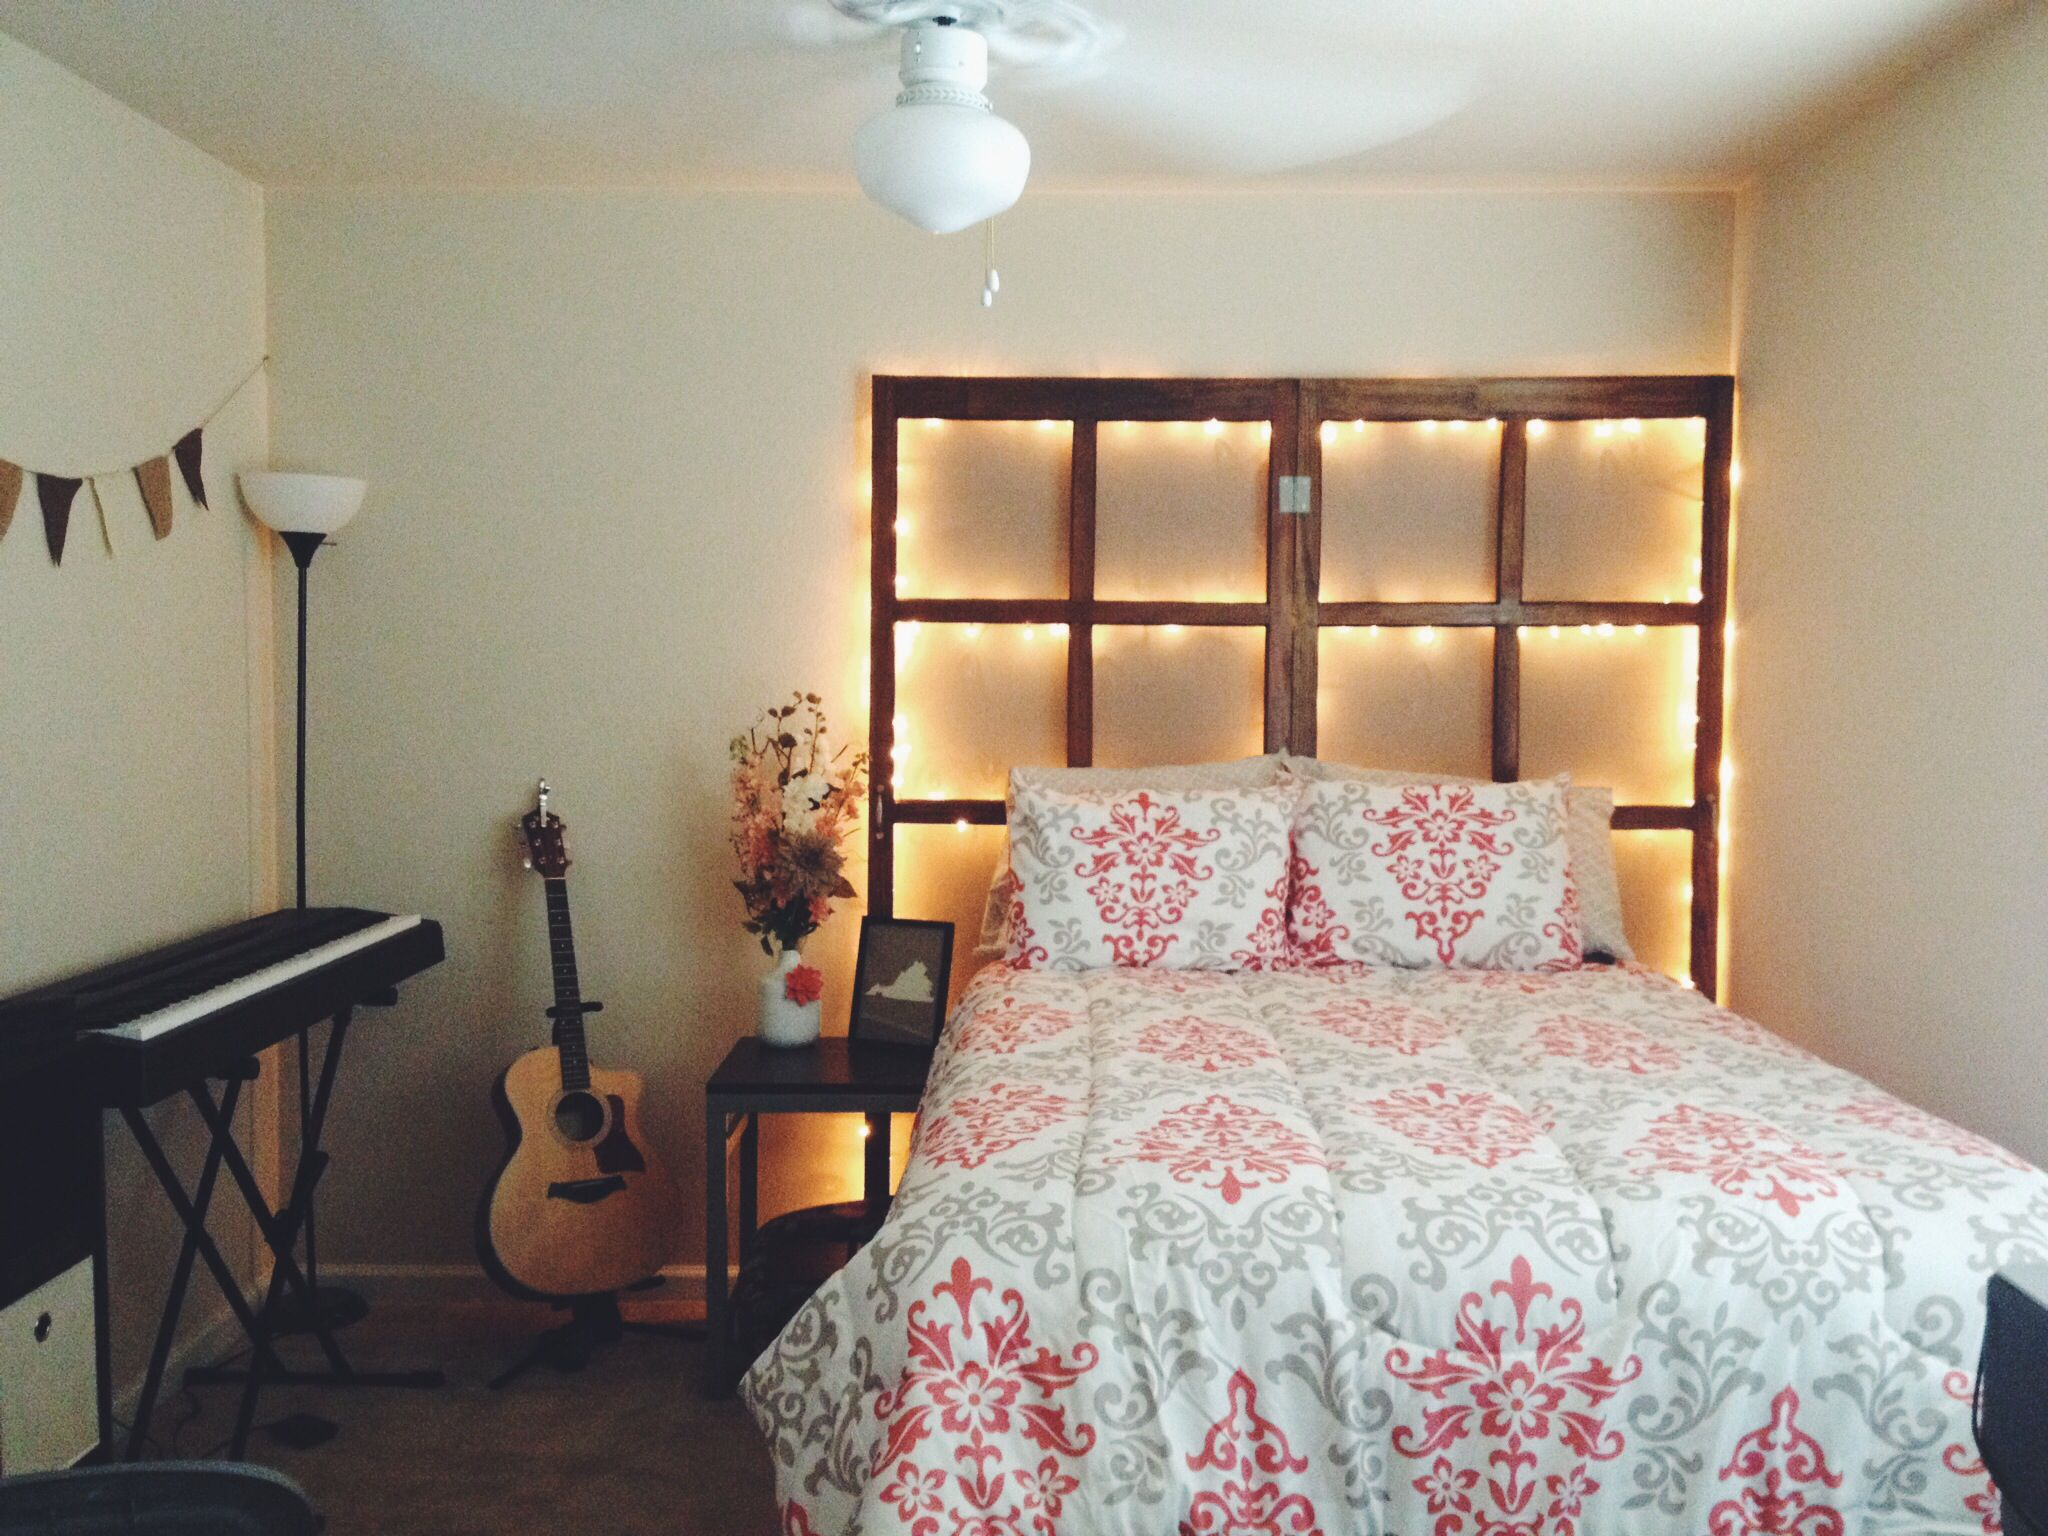 Apartment Living Headboard Made Out Of Old Screen Doors Diy